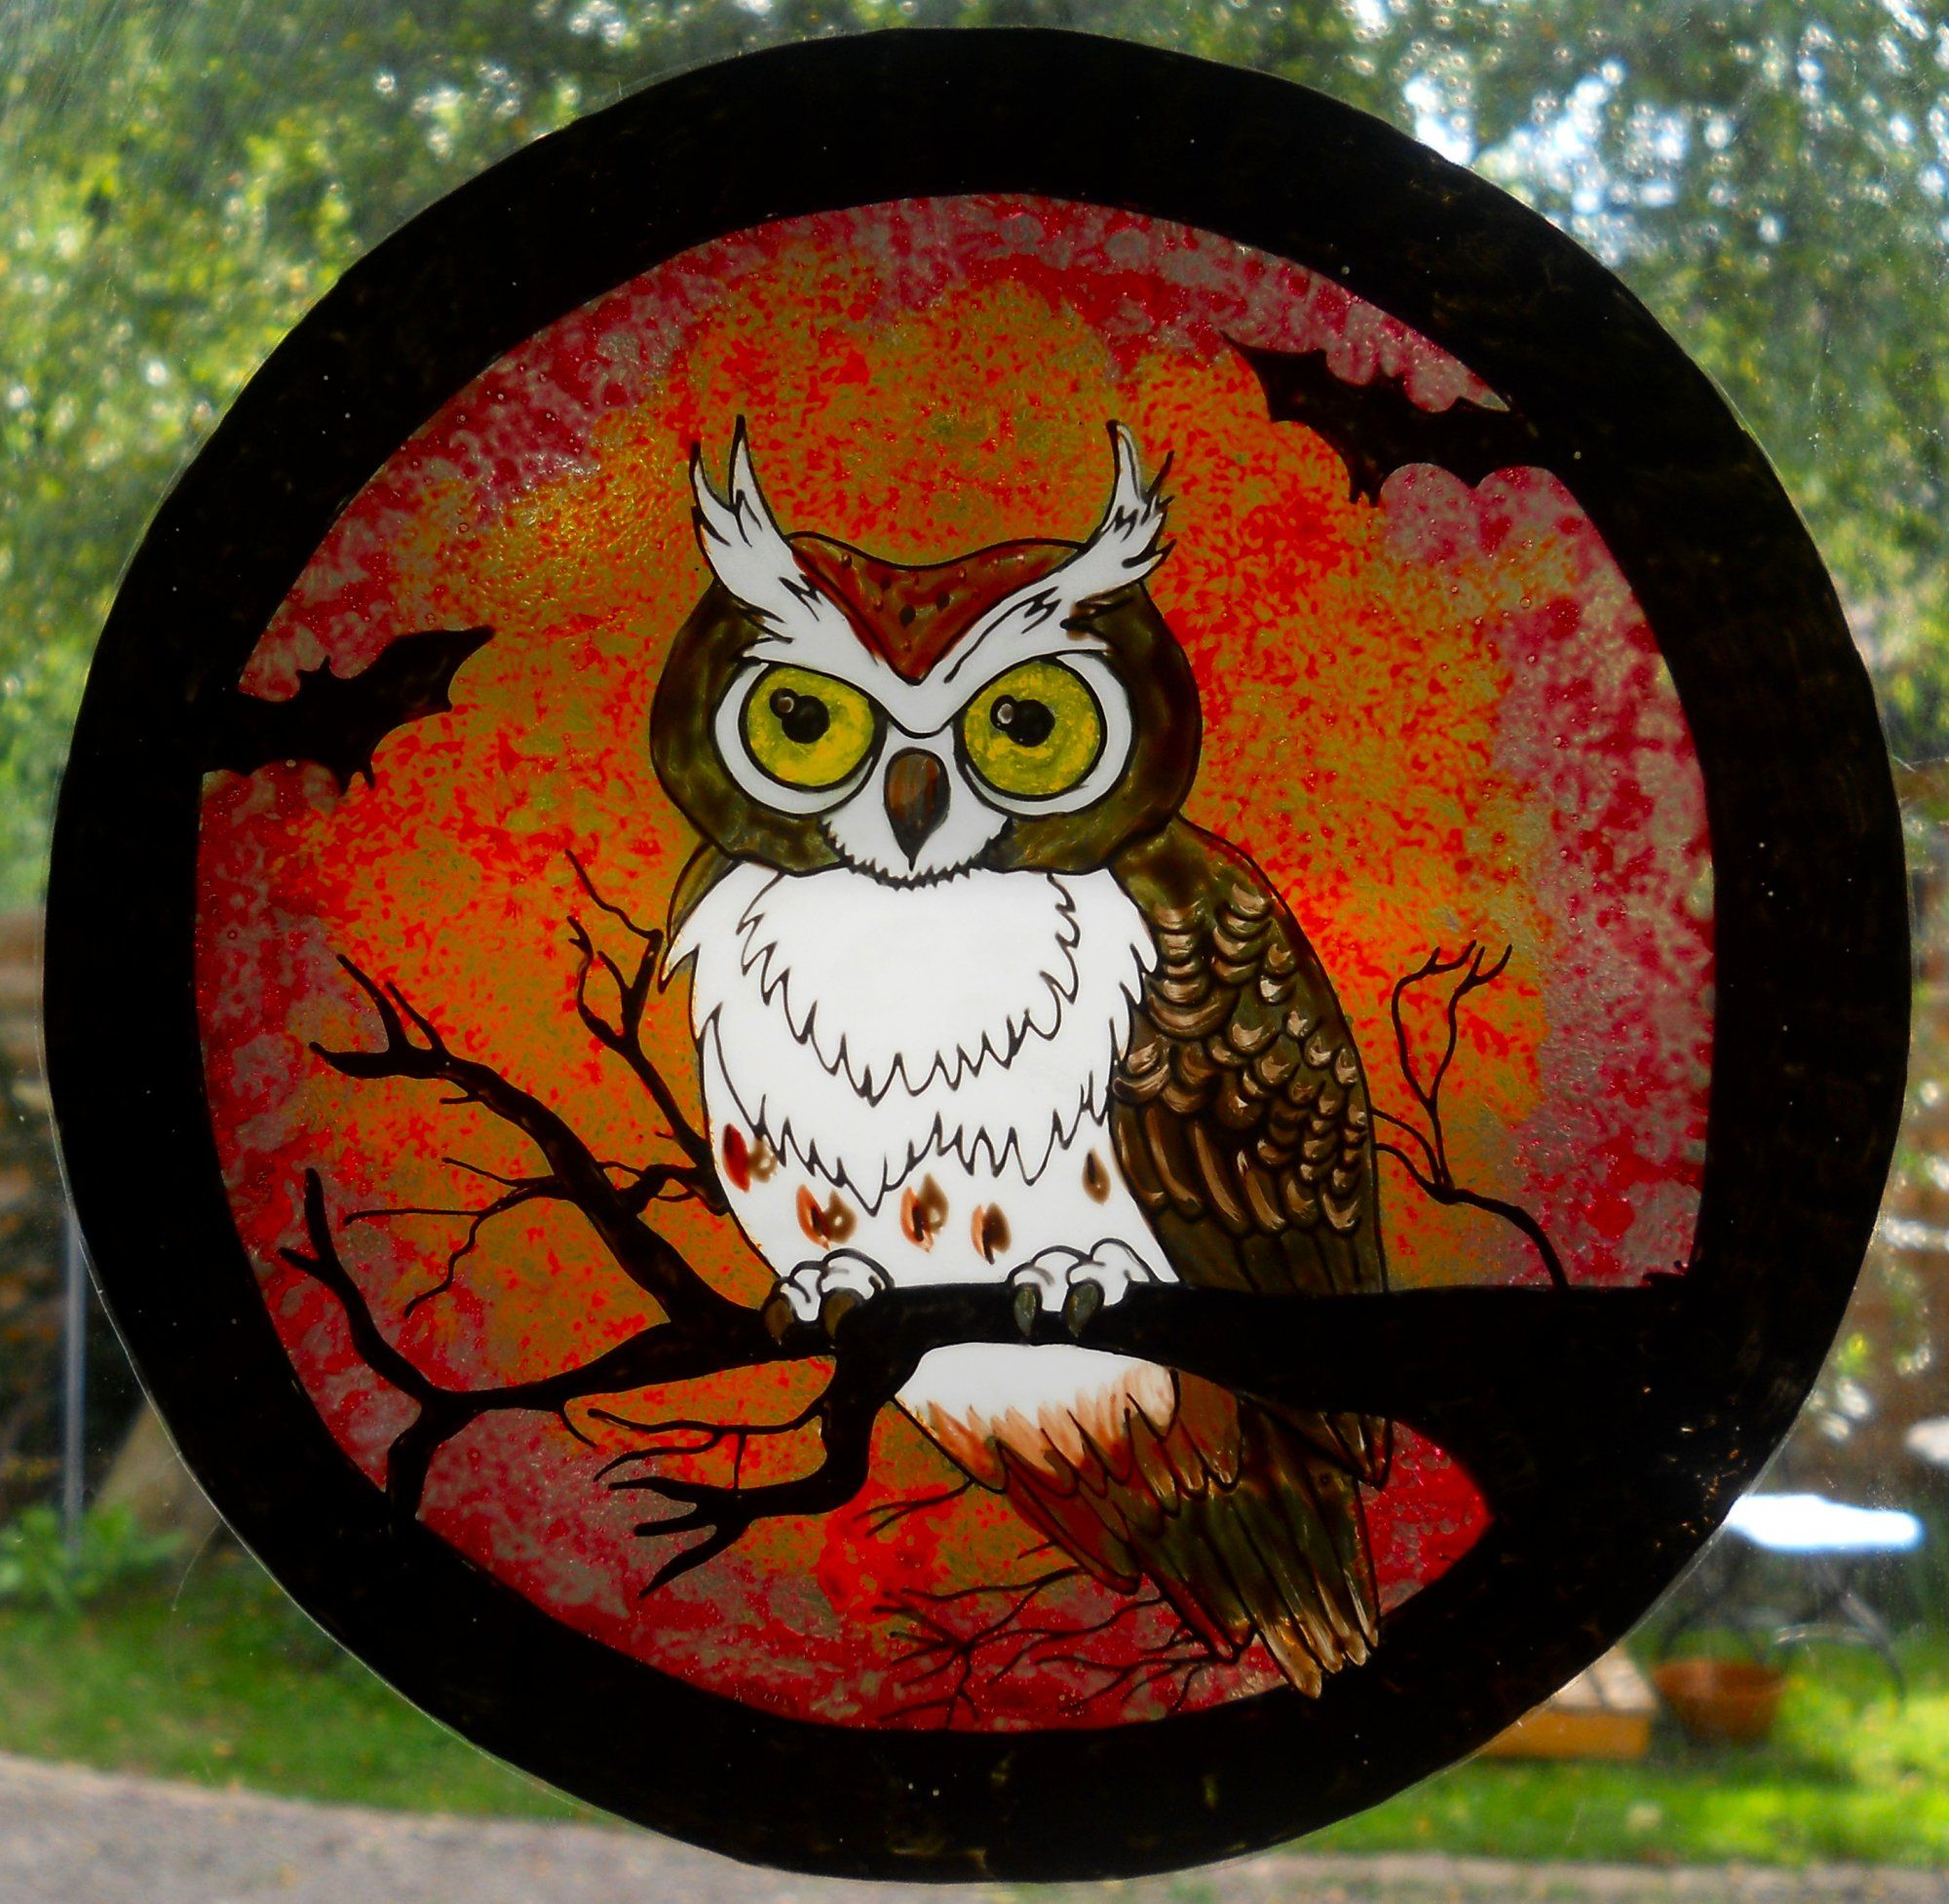 HALLOWEEN WINDOW CLING | Glass Painting ideas an projects ...